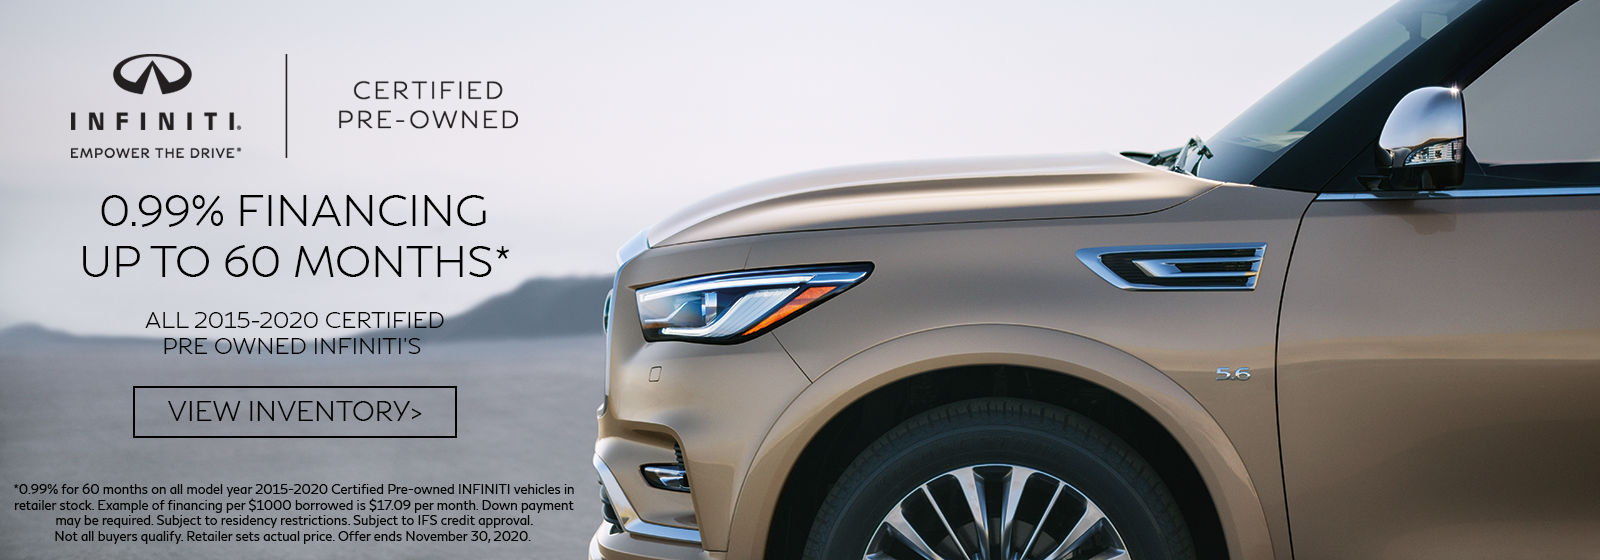 0.99% APR for up to 60 months on all 2015-2020 CPO INFINITI vehicles.